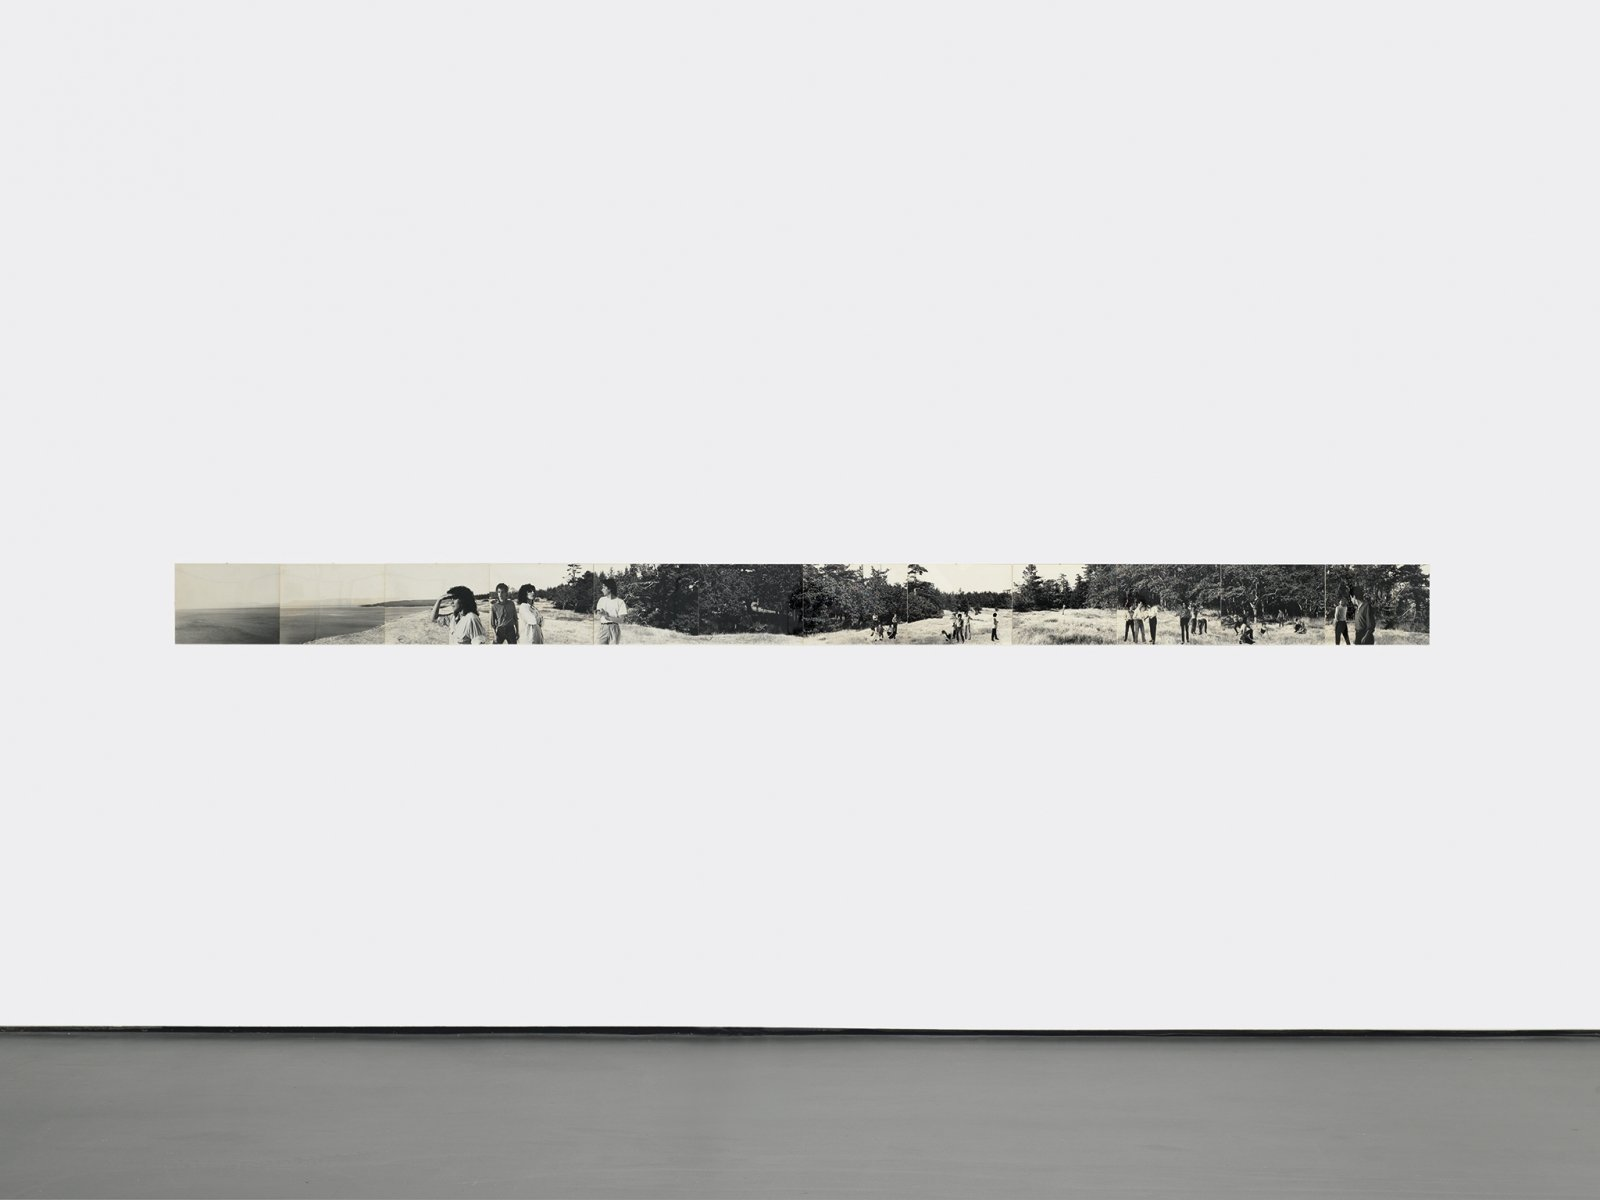 Ian Wallace, Maquette for Lookout, 1979, vintage silver gelatin print, 11 x 163 in. (27 x 414 cm)